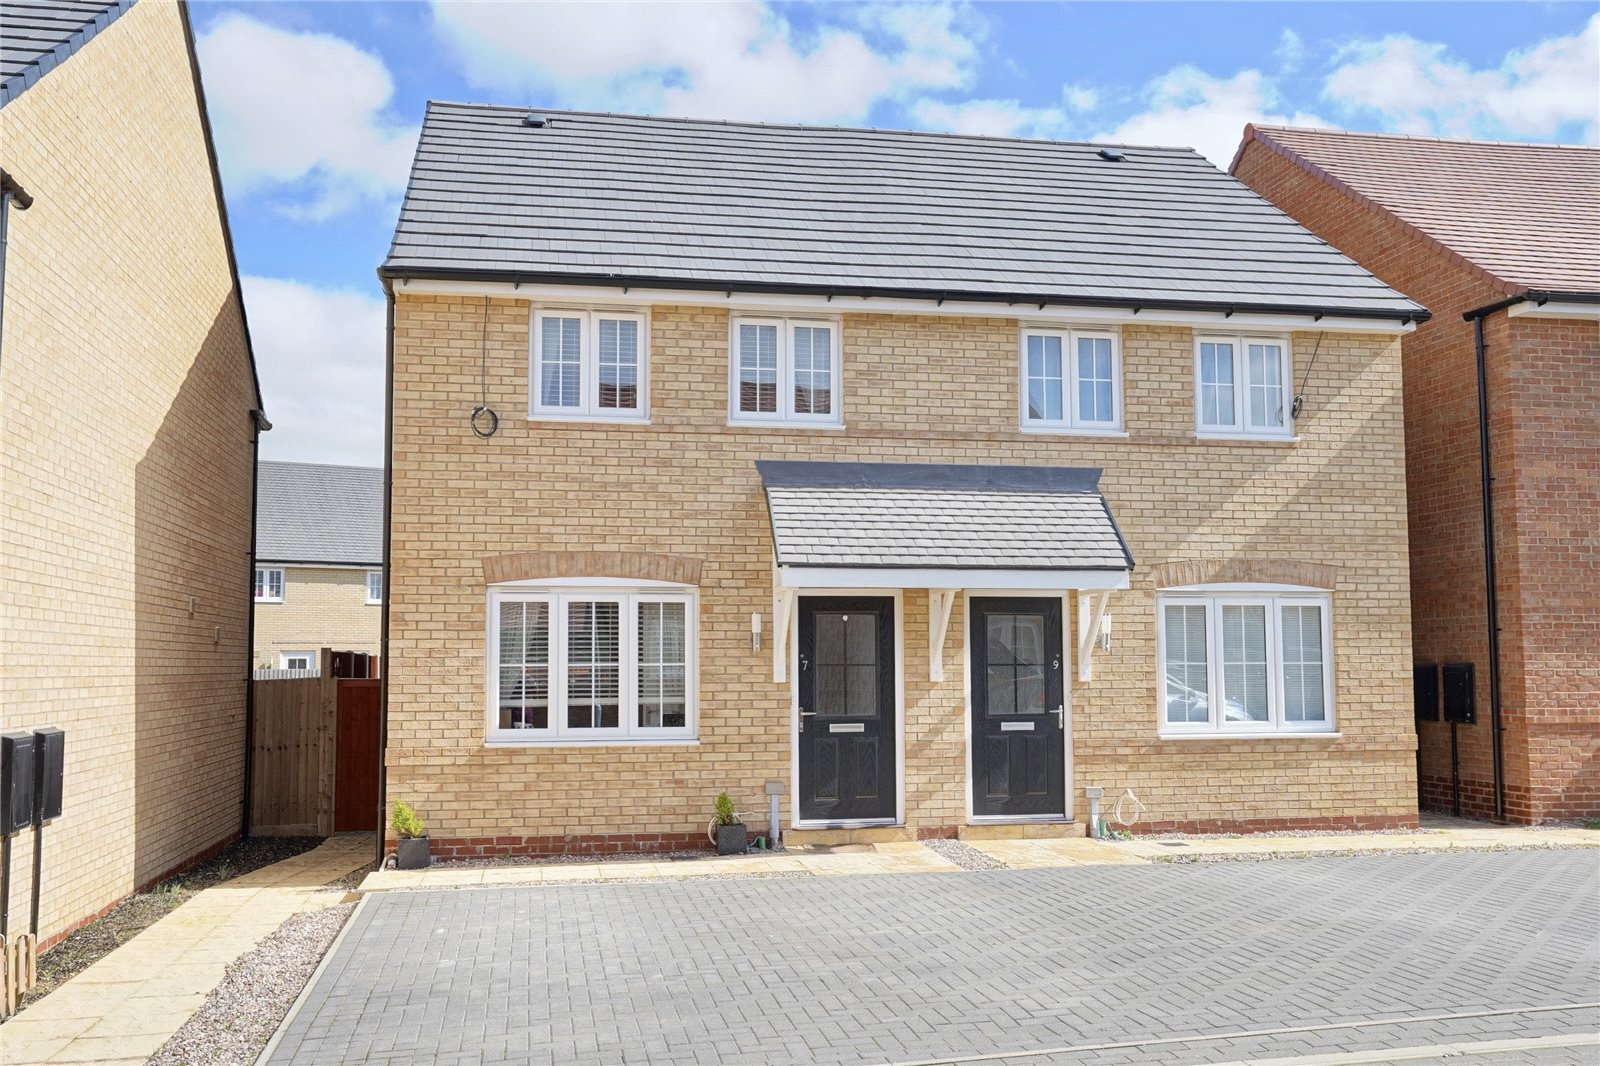 2 bed house for sale in Godmanchester, PE29 2BF, PE29